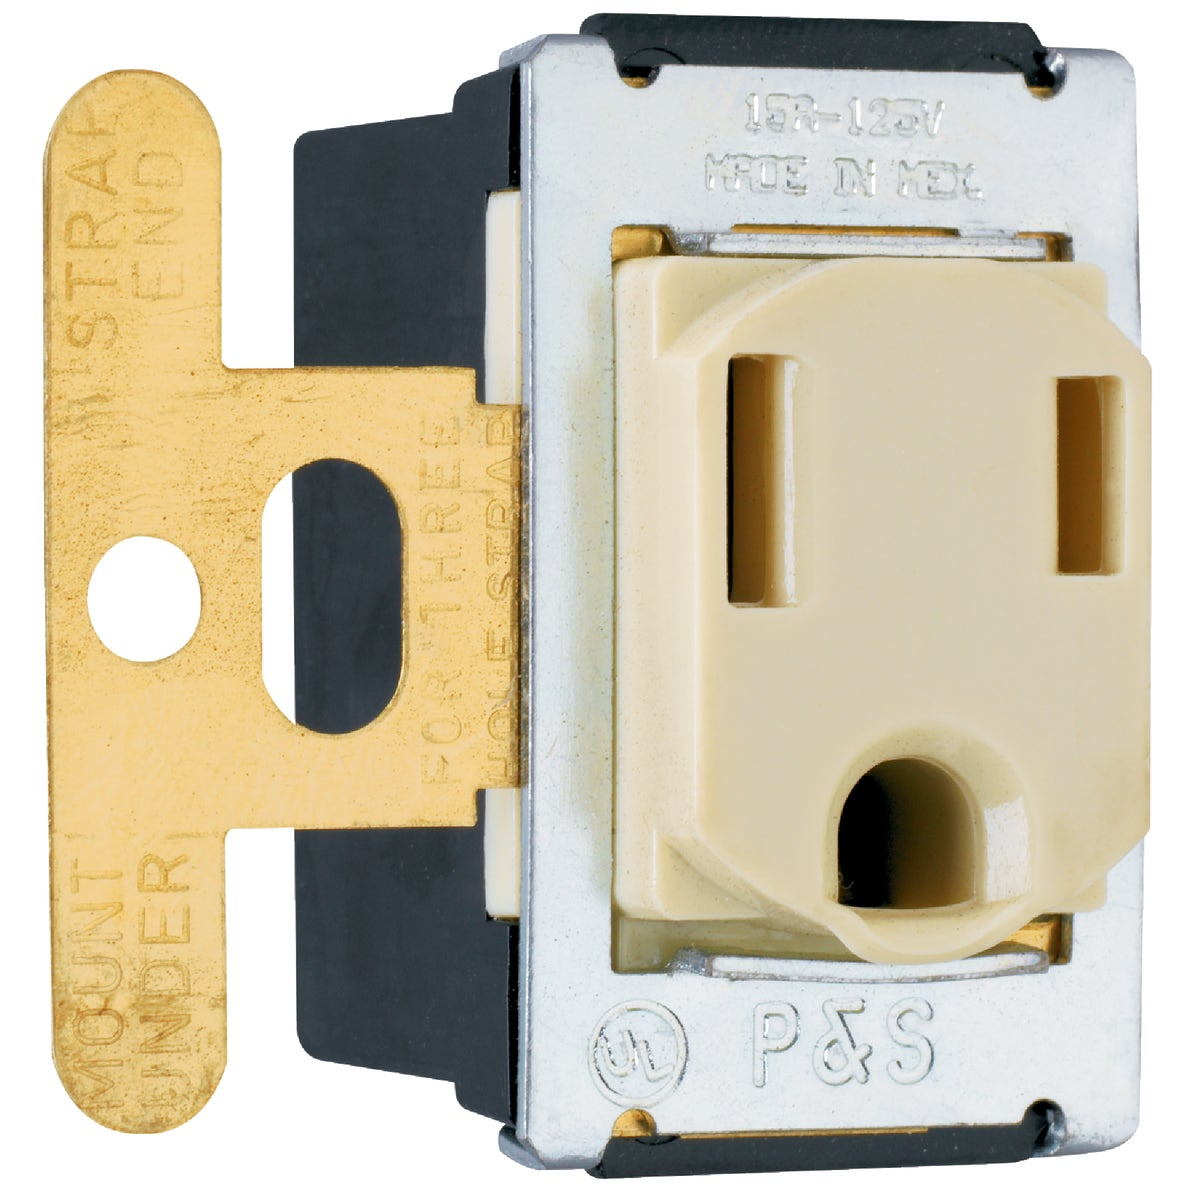 3-WIRE IV FLUSH OUTLET